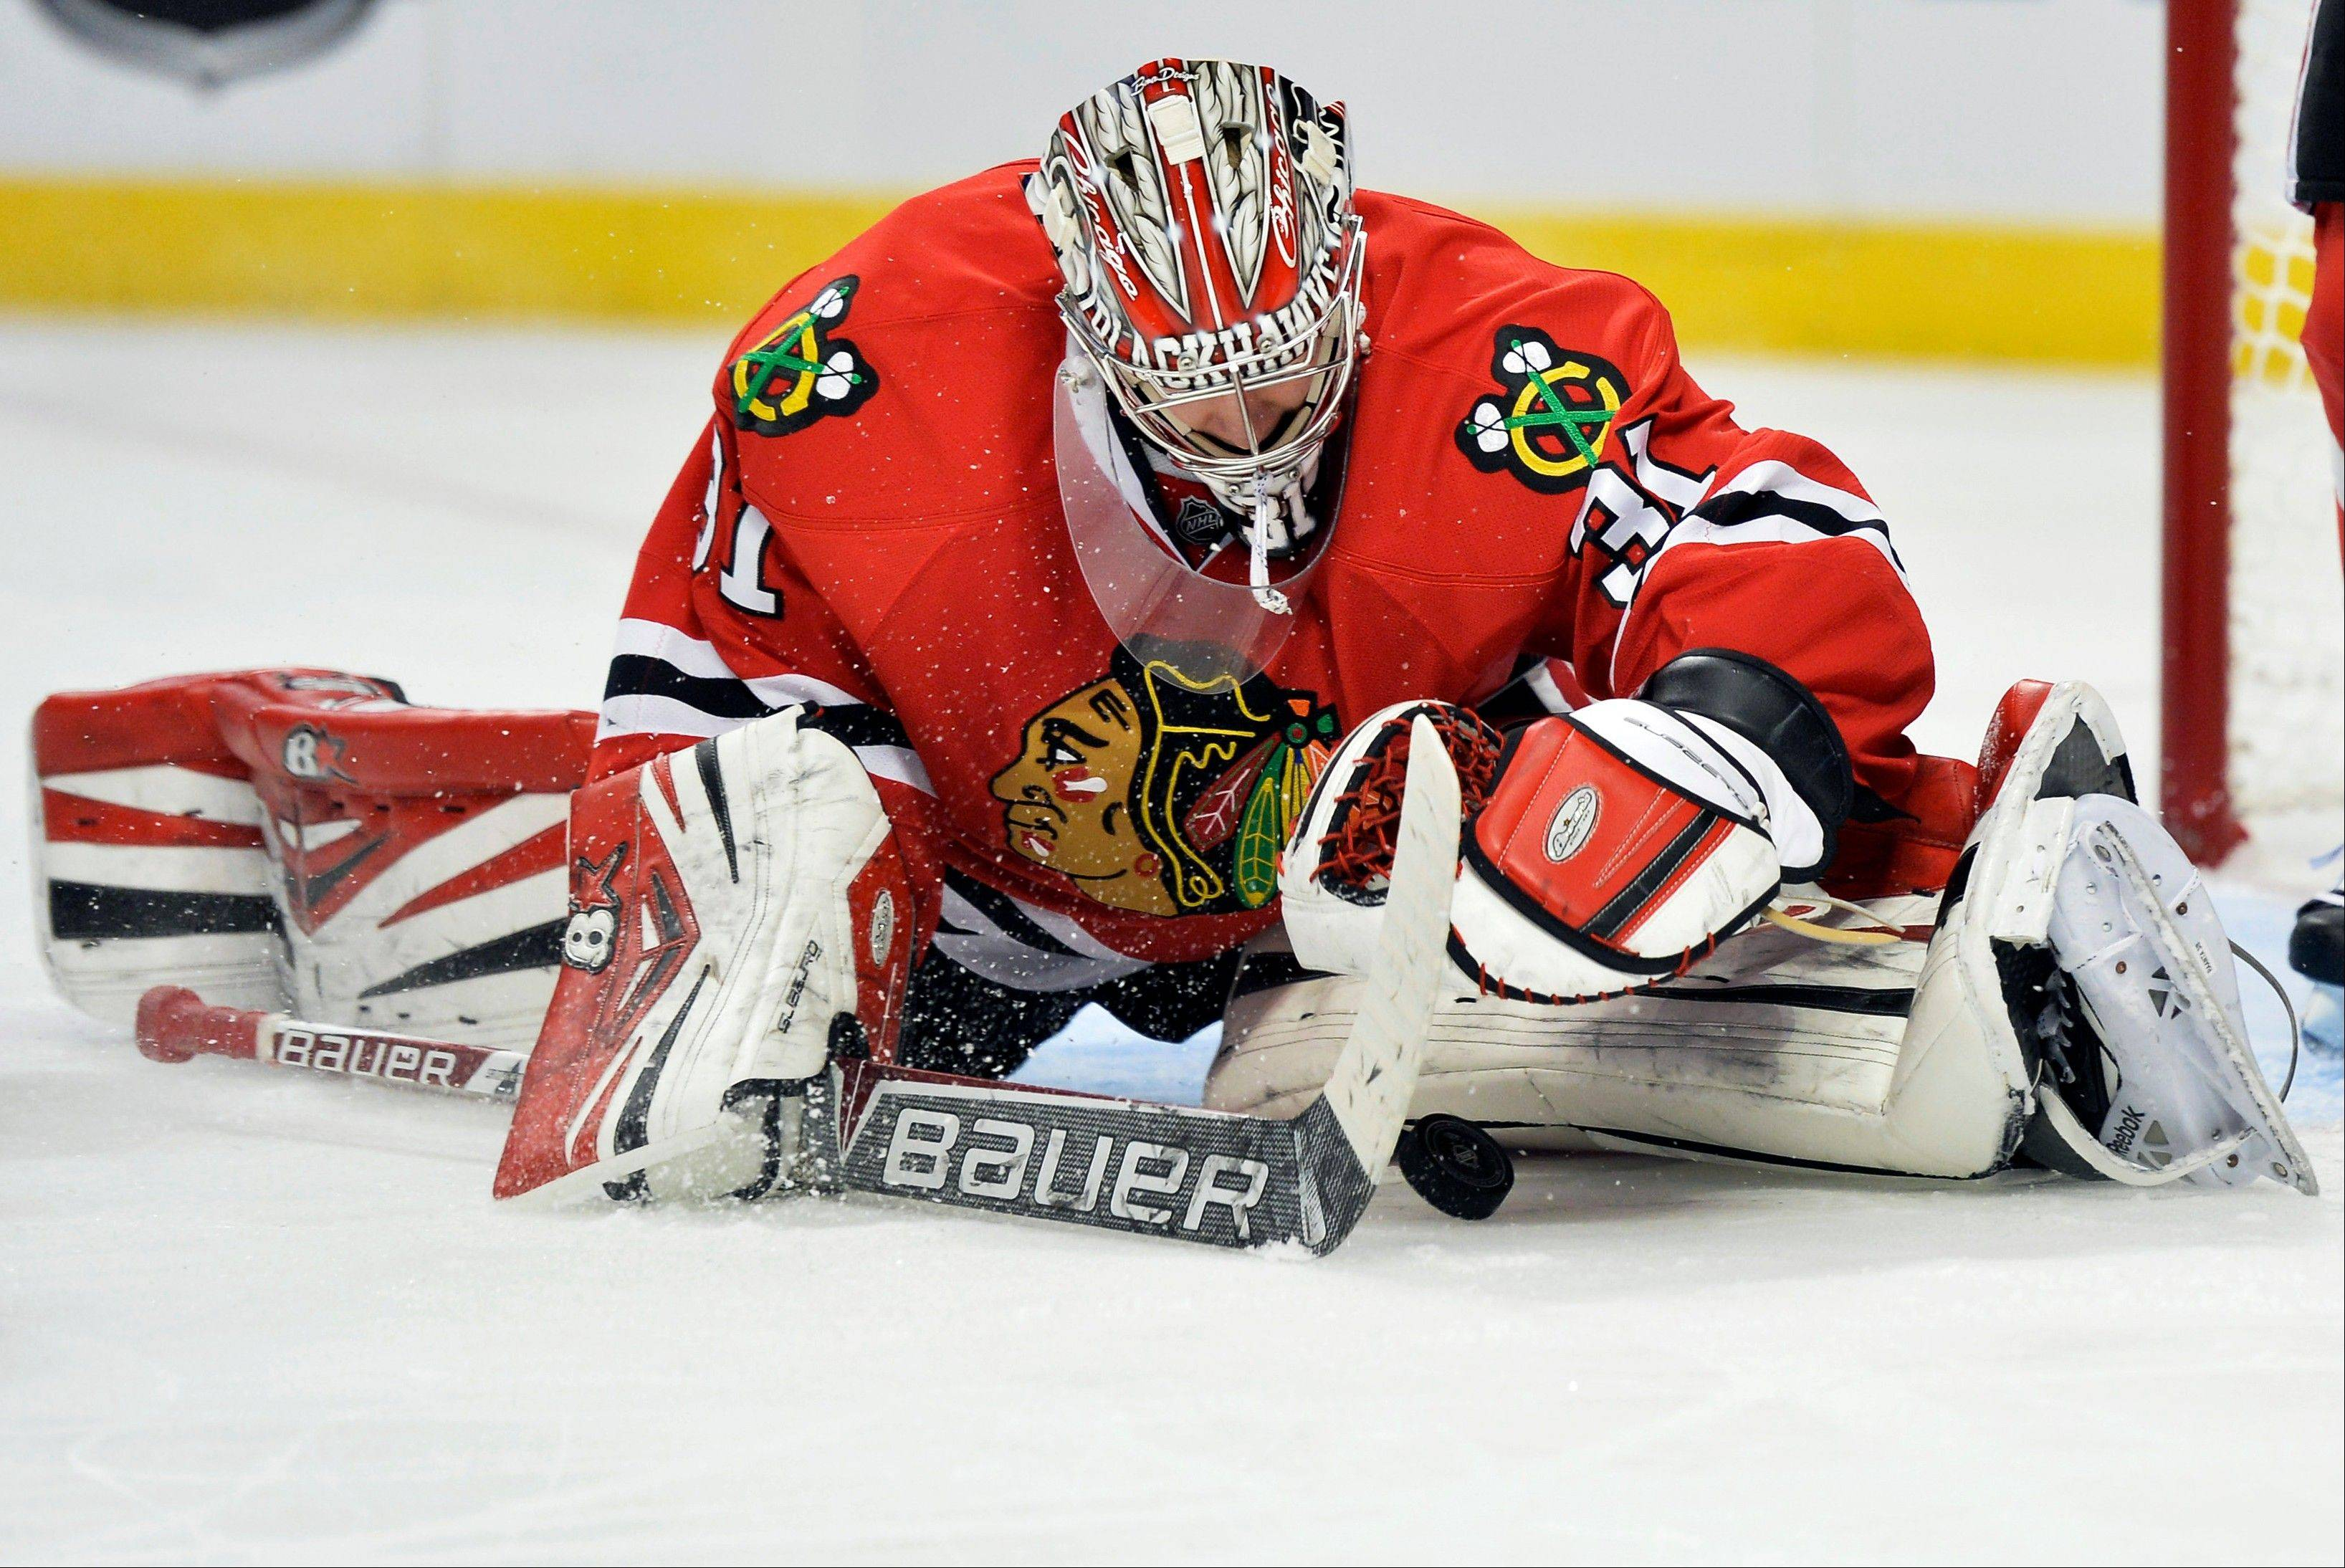 The Blackhawks will be relying on Antti Raanta to get the job done until starter Corey Crawford returns from a leg injury.